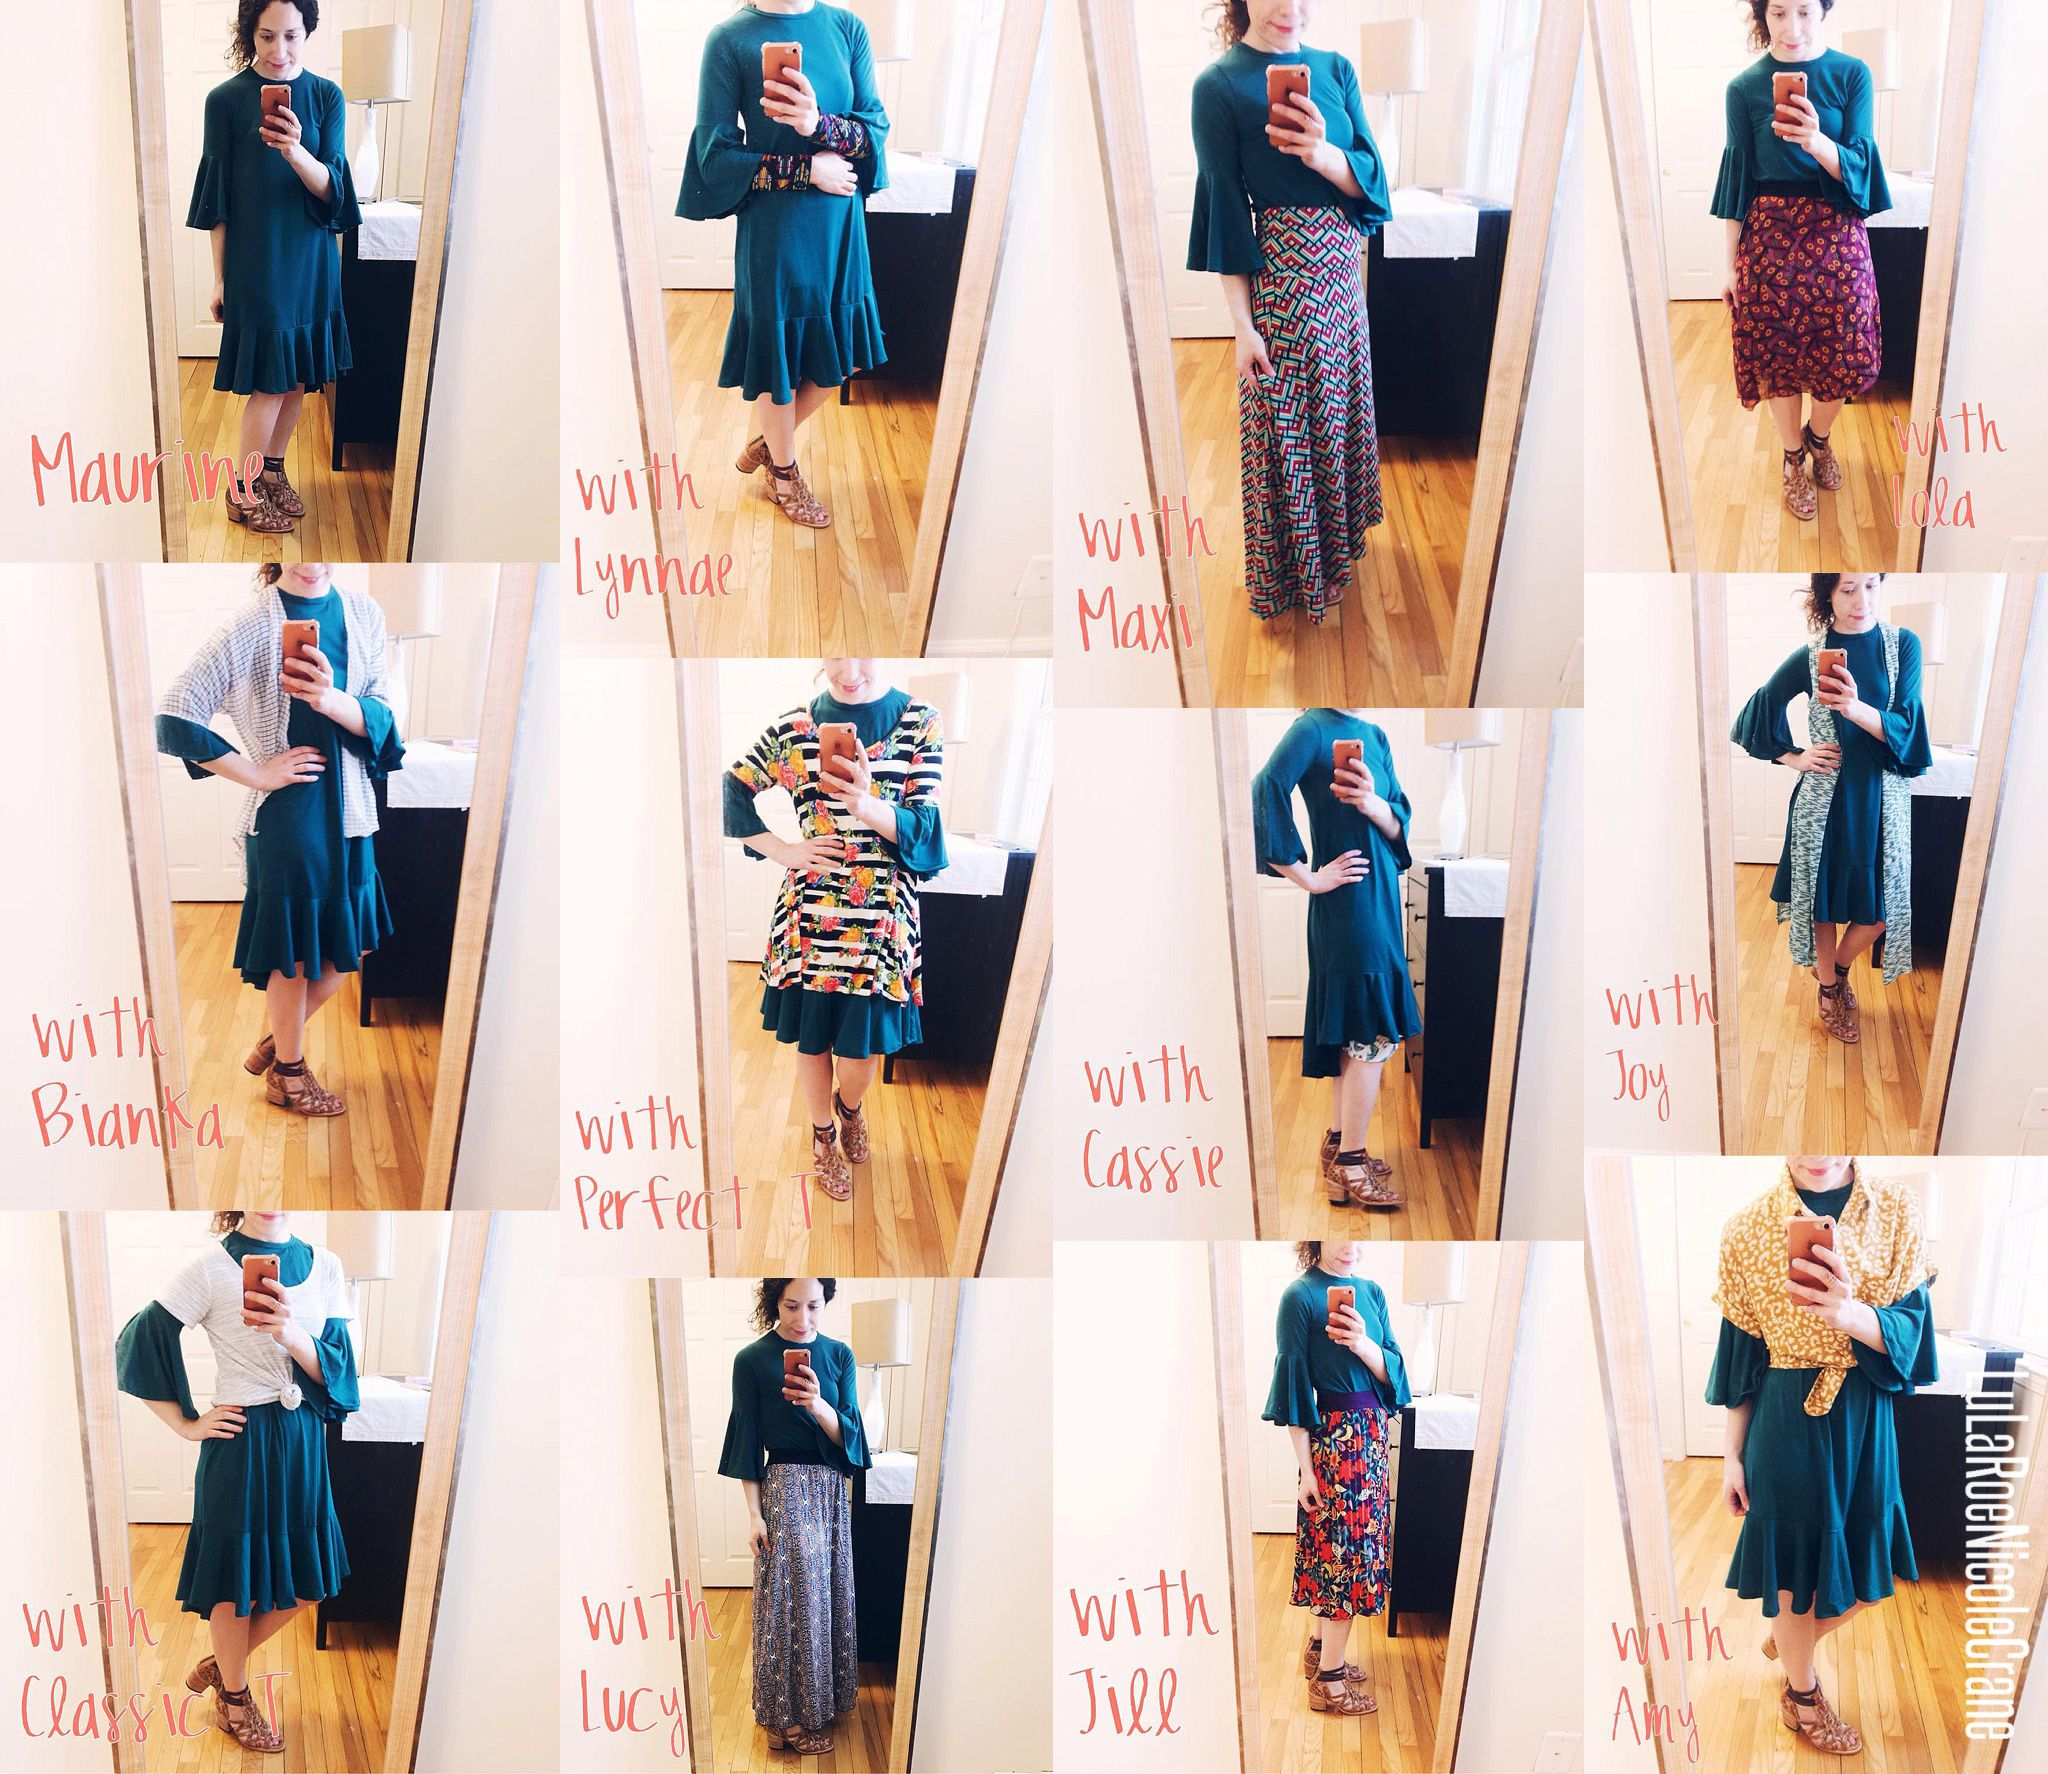 b7e0eff2c4c Look at all the different ways you can wear the LuLaRoe Maurine dress! I  love her so much!  lularoestyling  onlineshopping  fashion  ootd  outfit   style ...